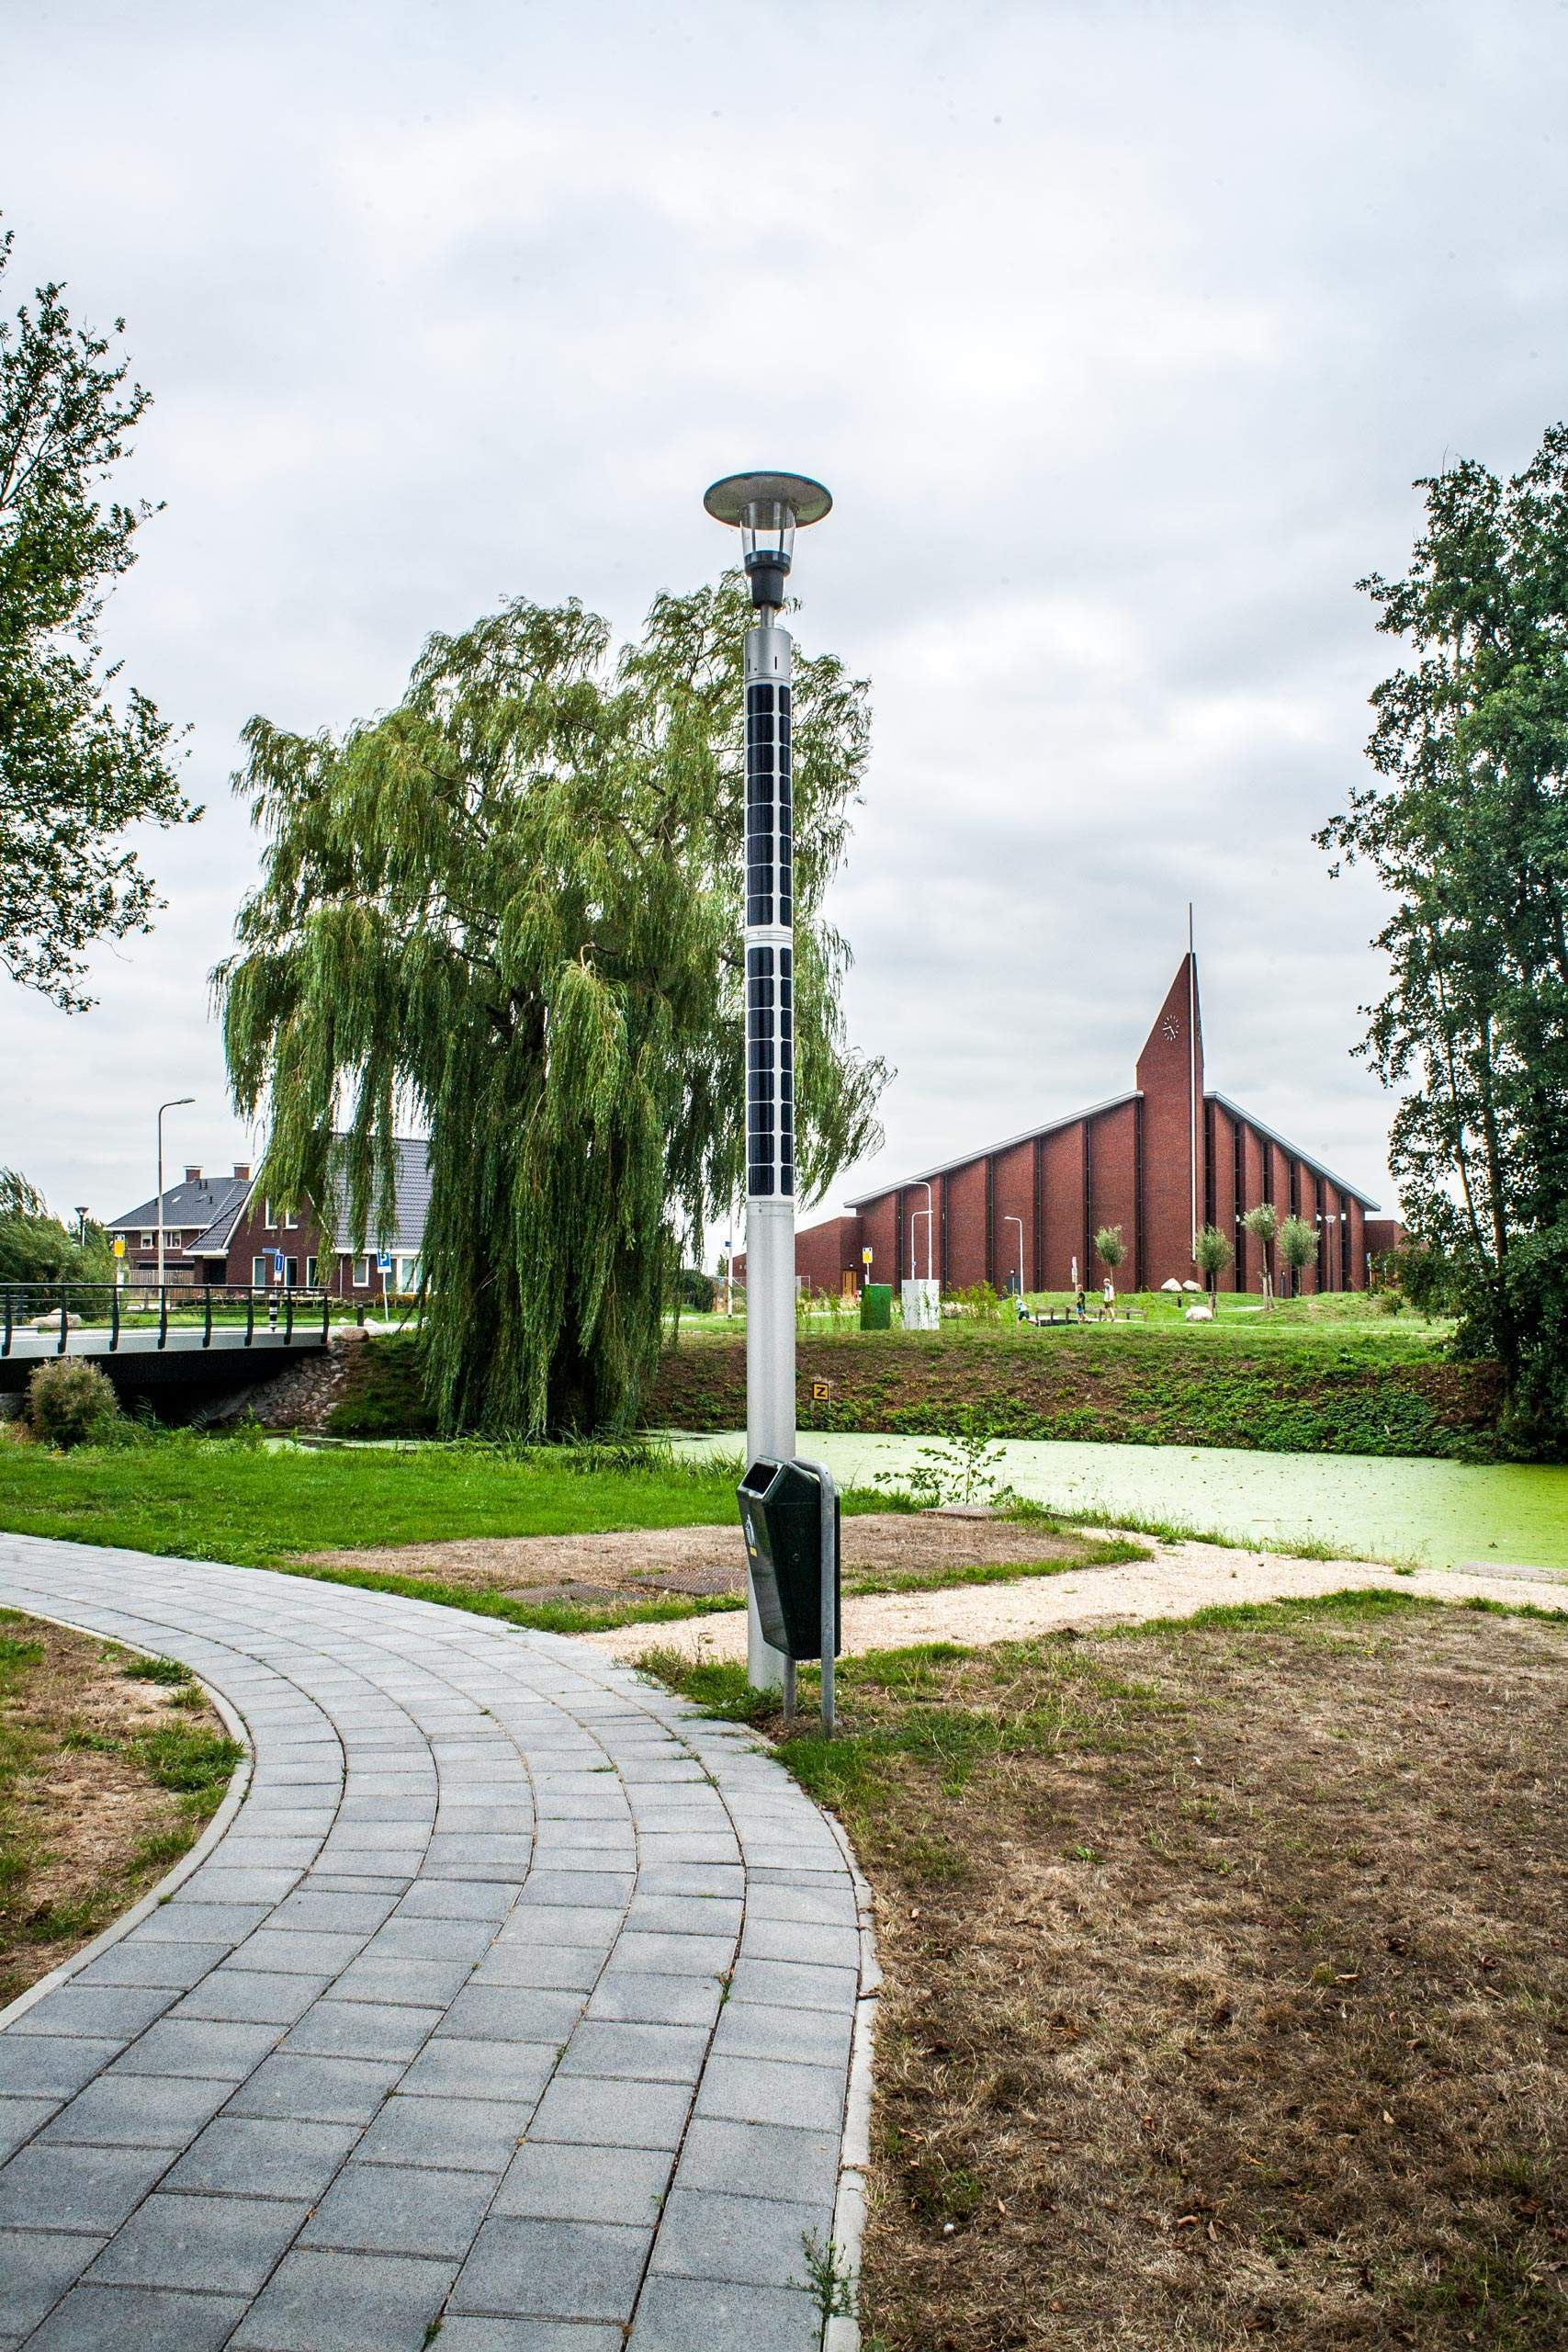 Soluxio solar landscape lighting used for pathway lighting